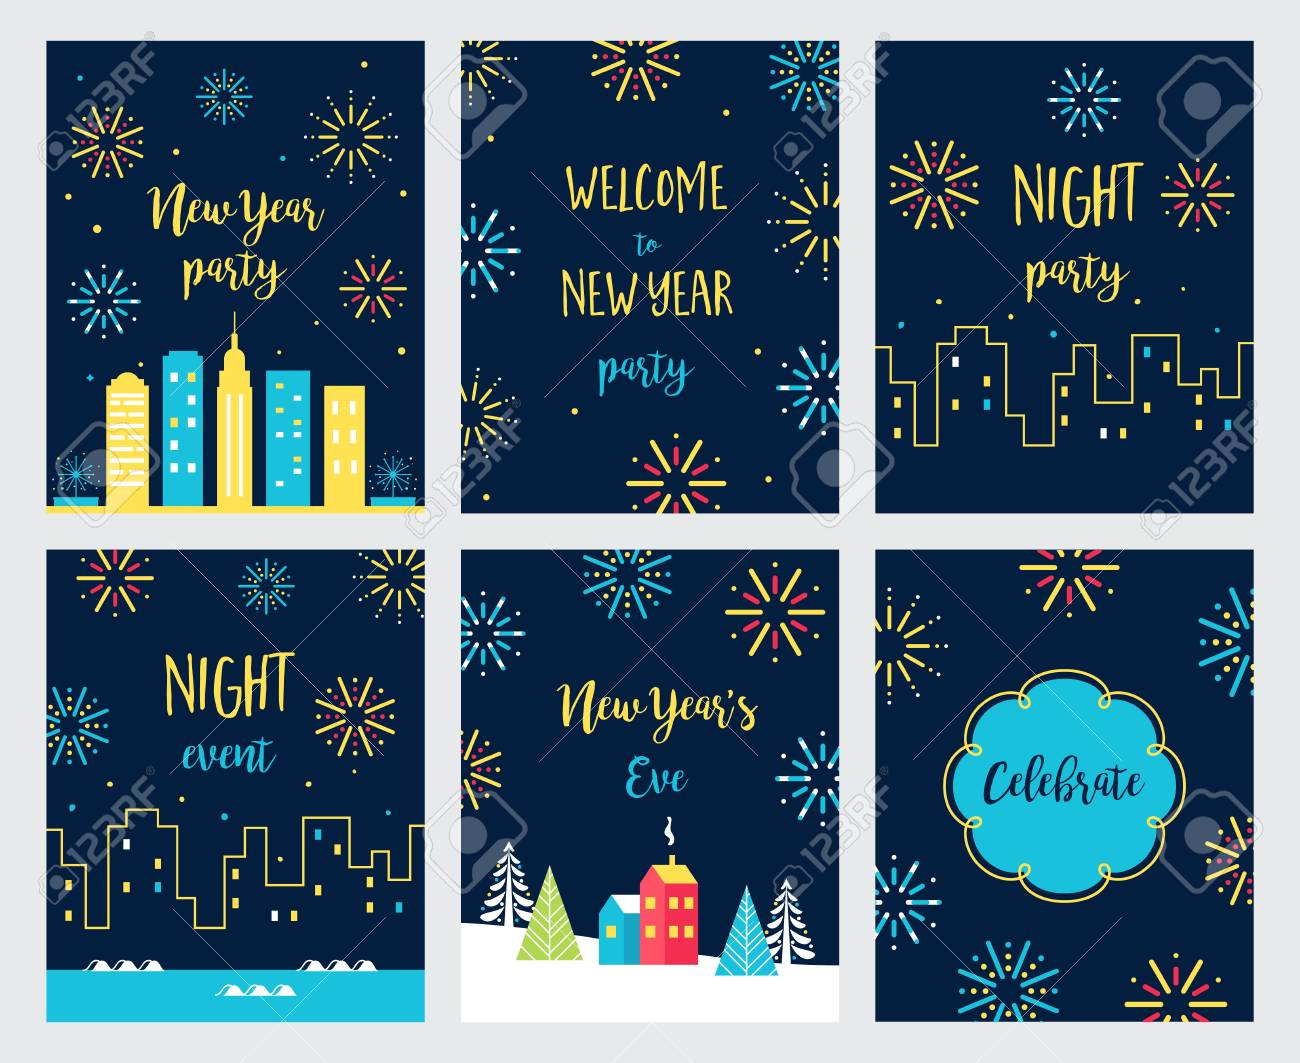 set of new years eve cards and invitations with fireworks designs